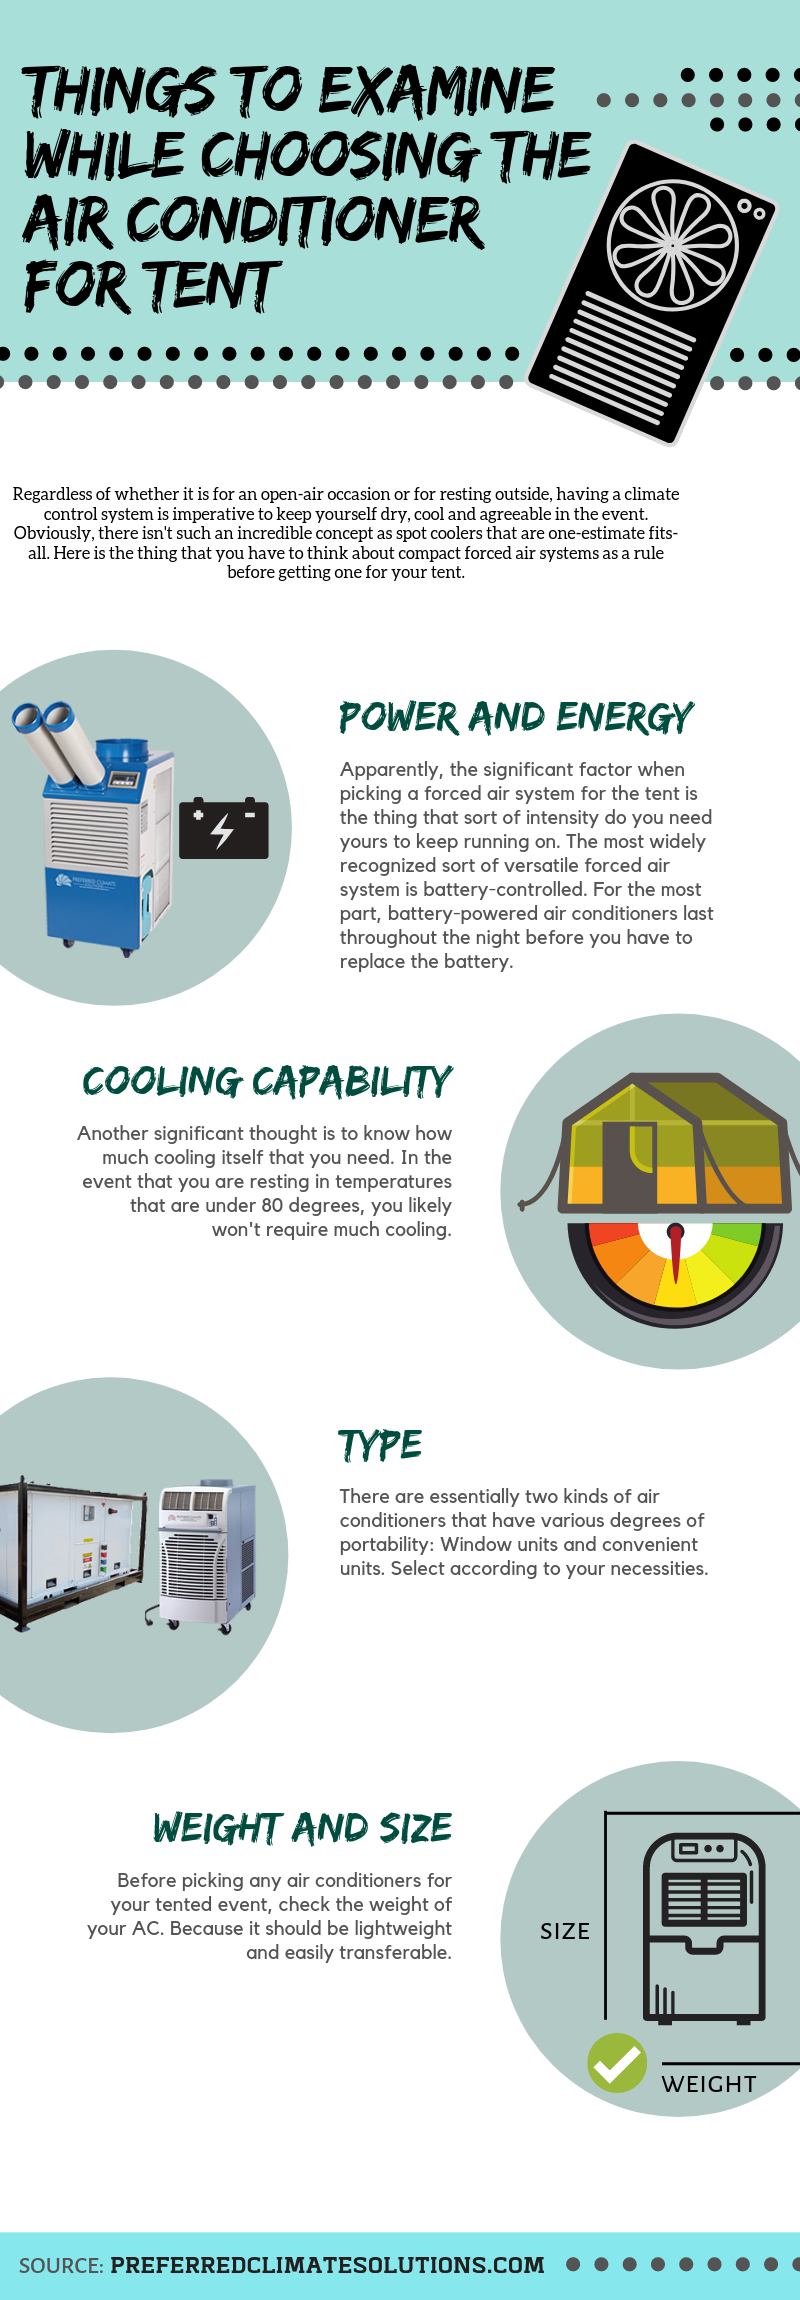 Things to Examine While Choosing The Air Conditioner For